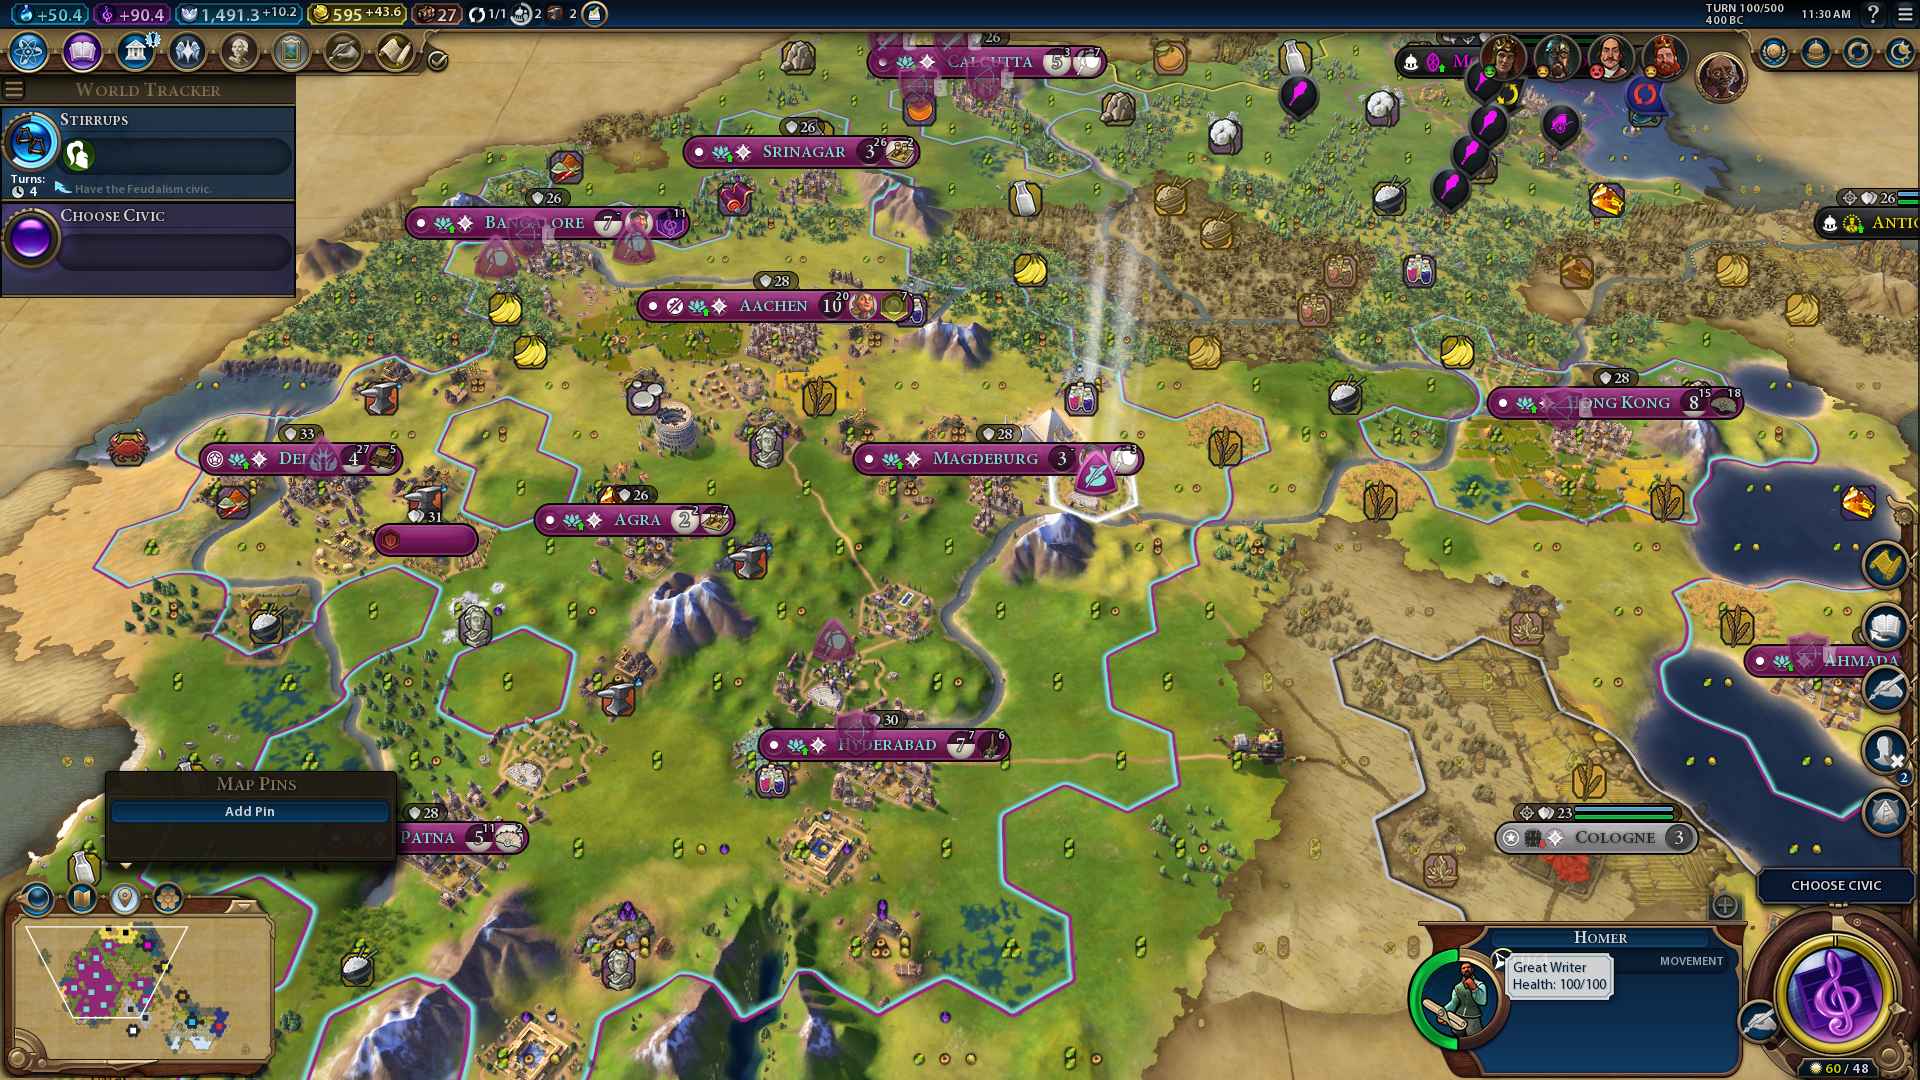 Sid Meier's Civilization VI (DX11) 10_3_2018 11_30_50 AM.png